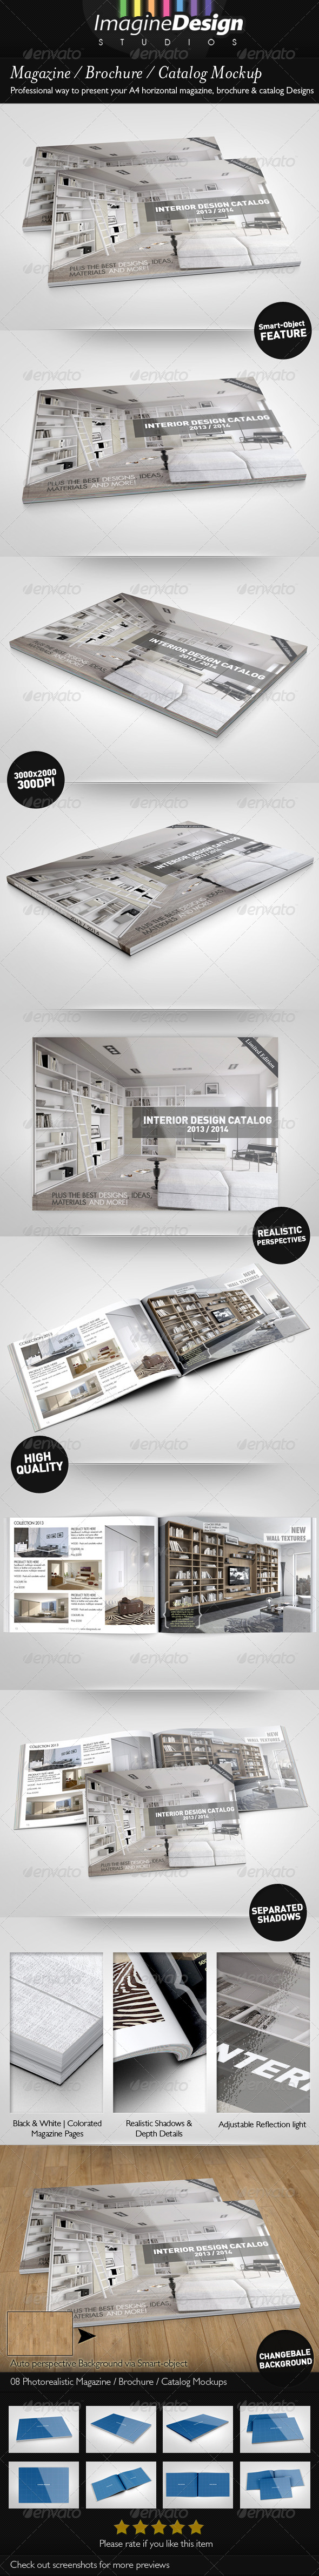 Magazine / Brochure / Catalog Mock-Up - Print Product Mock-Ups